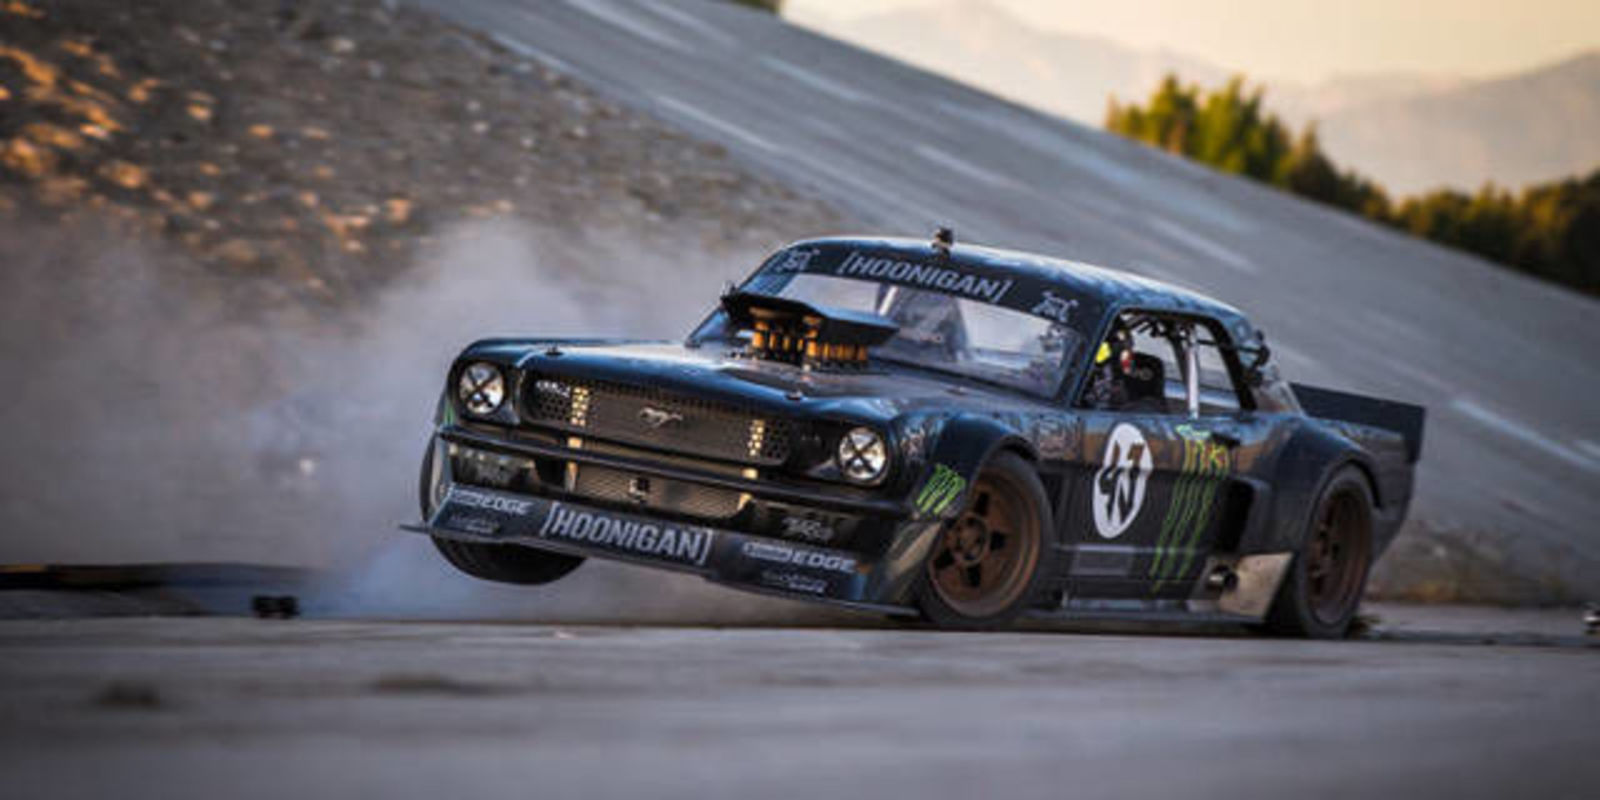 47 Ken Block Mustang Wallpaper On Wallpapersafari